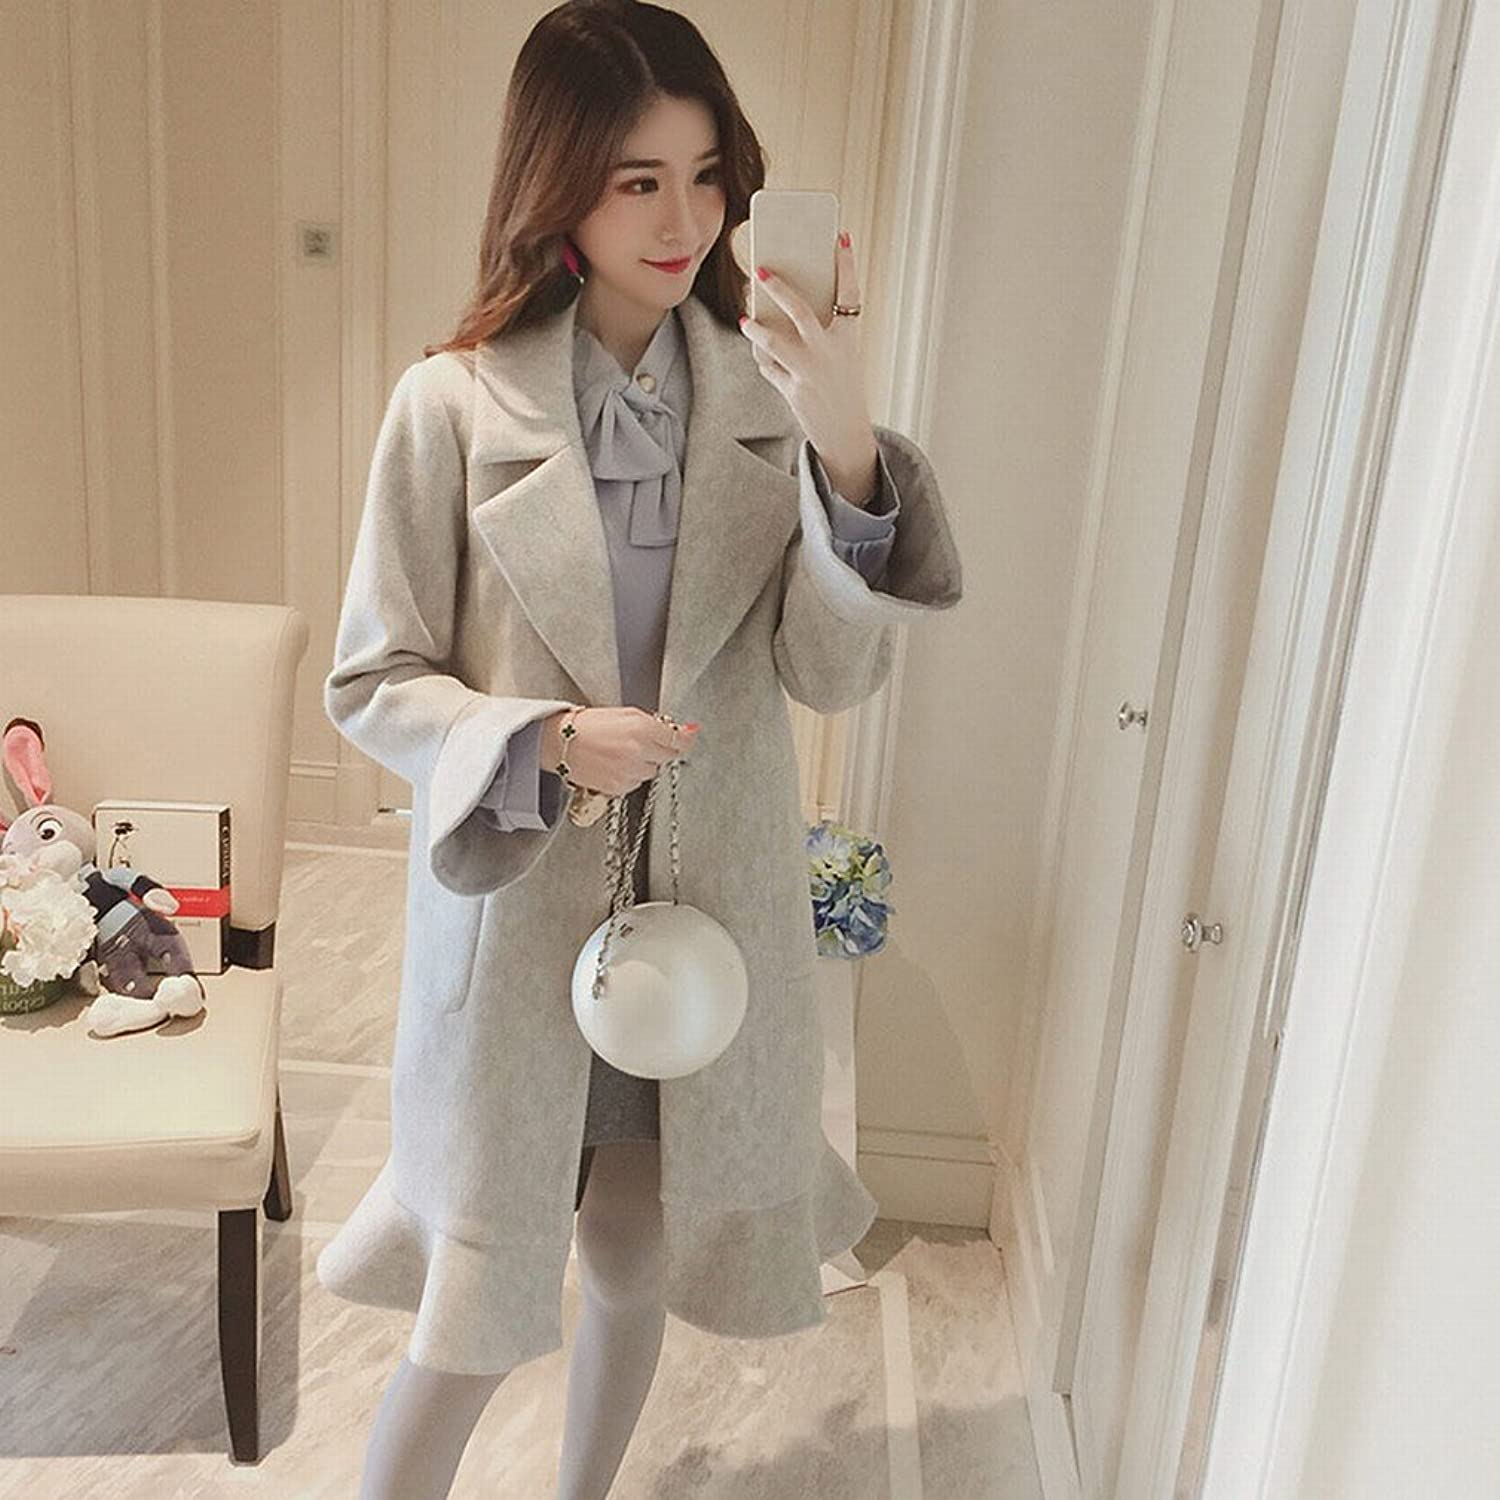 MIF Trumpet Sleeves Lotus Leaf Coat Jacket Female Long Section of Autumn and Winter Loose Coat Student Windbreaker